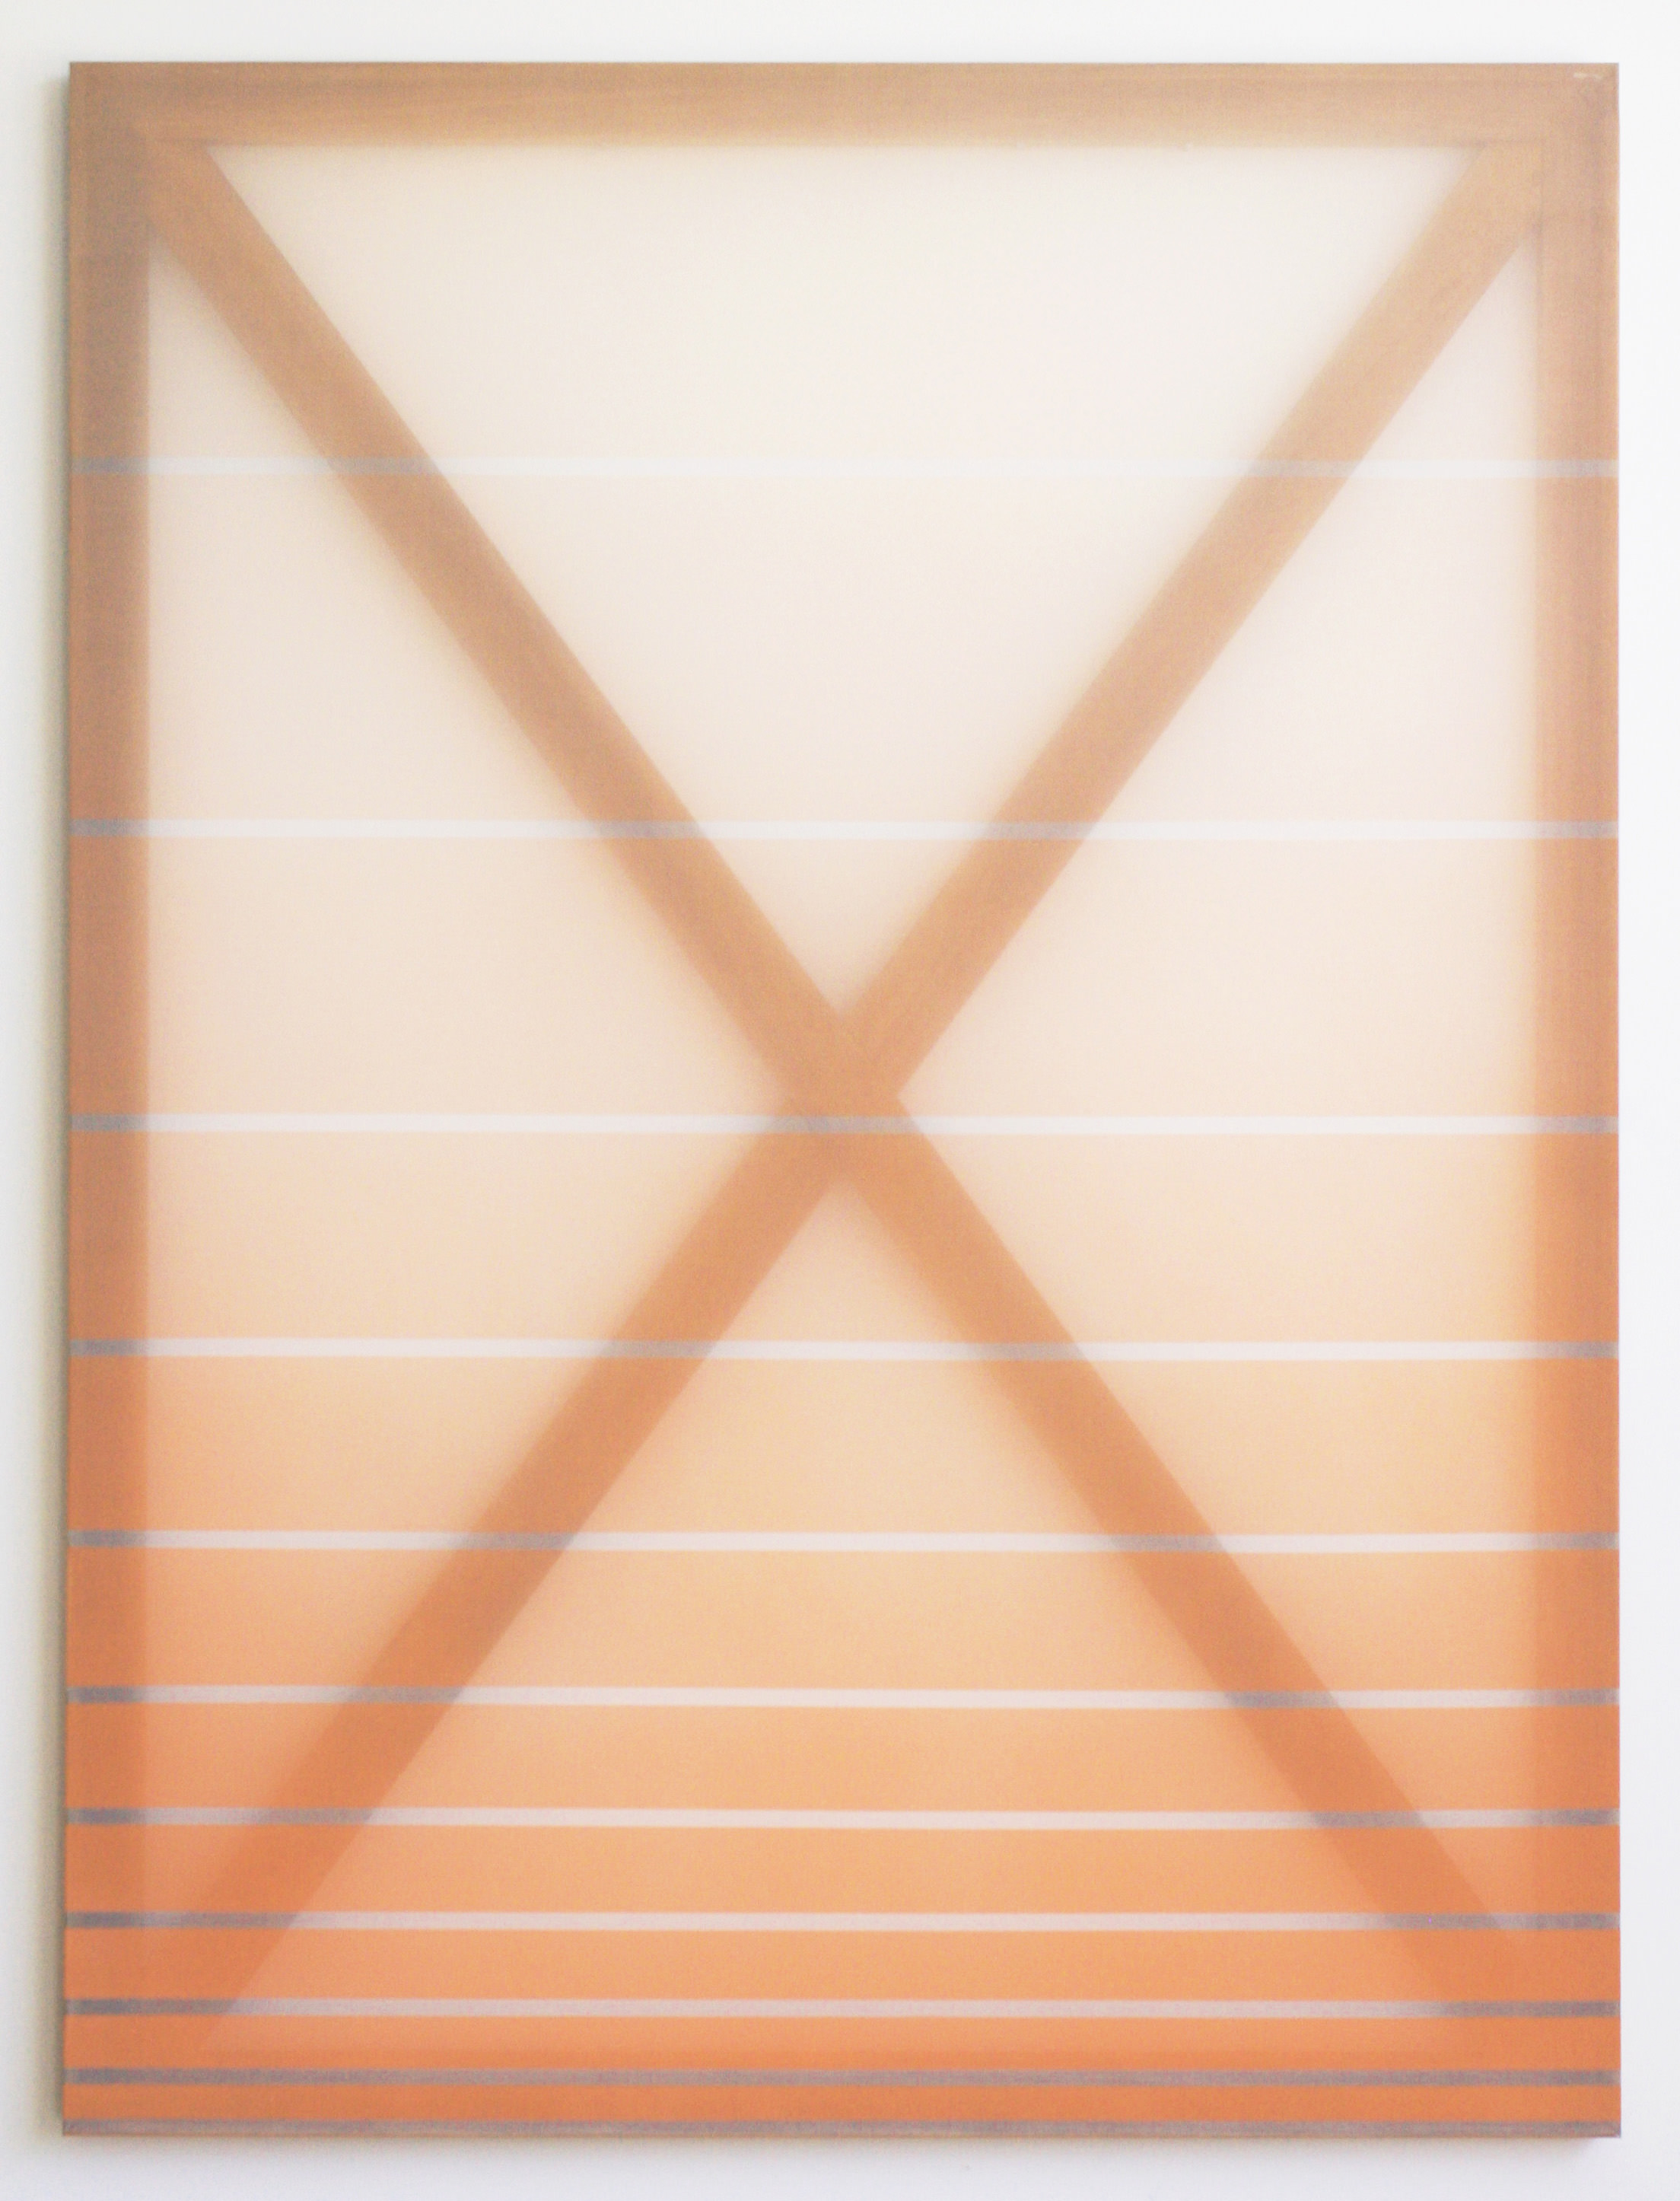 14) Rebecca Ward, X (orange), 2015, oil on silk, 60 x 45 in